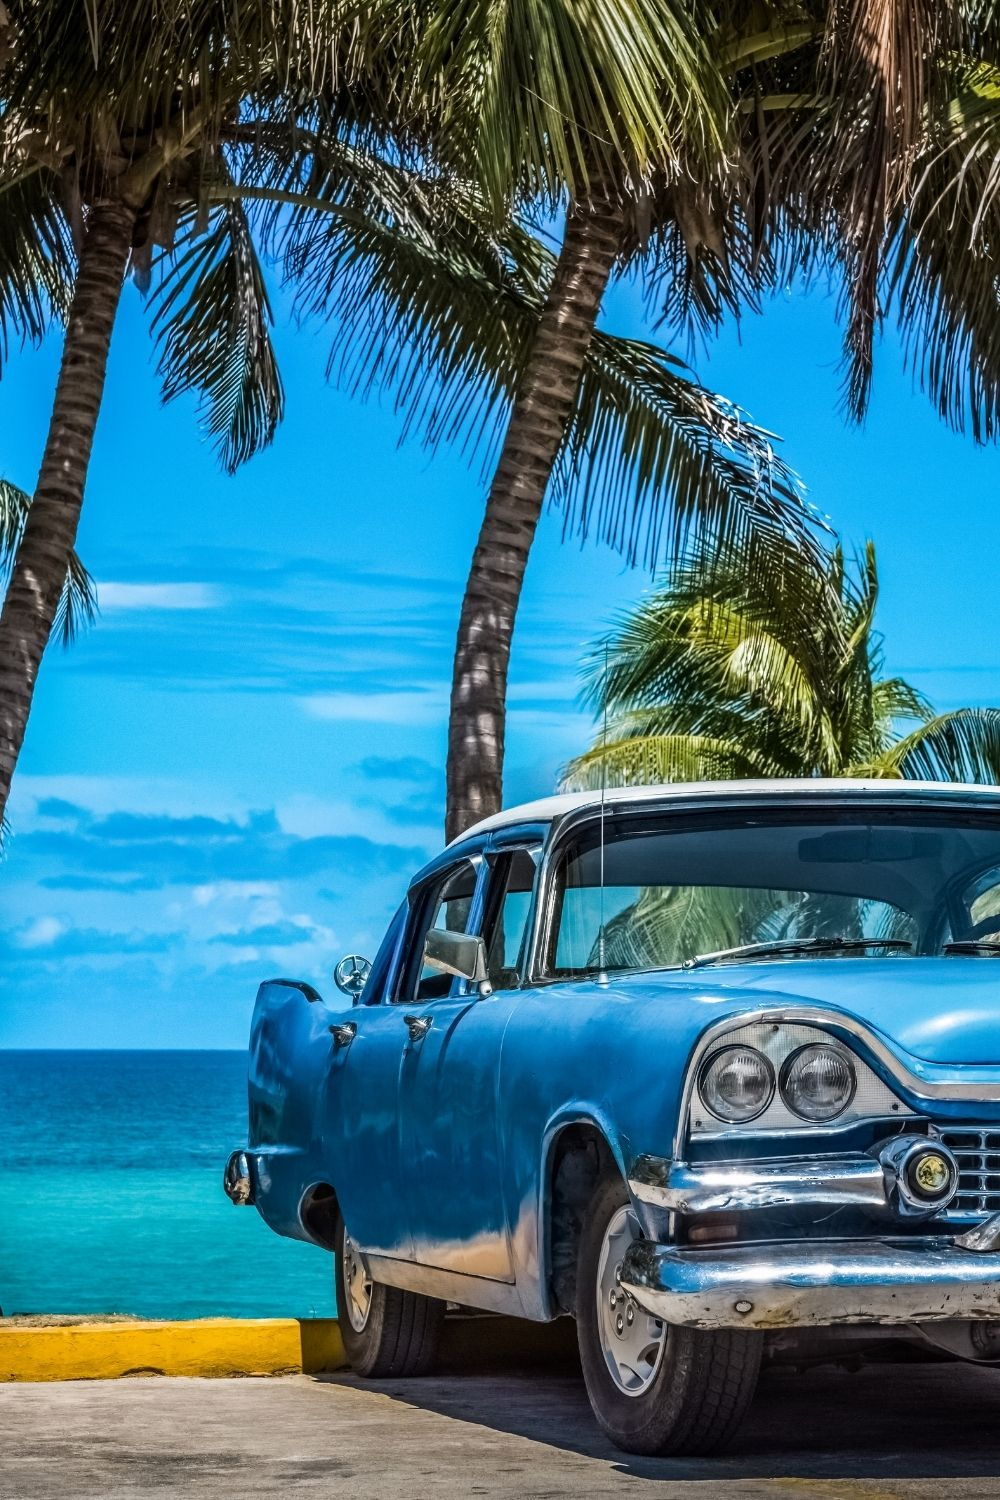 blue shiny cadillac infront of the beach and a few visible palm trees, this image was taken in cuba